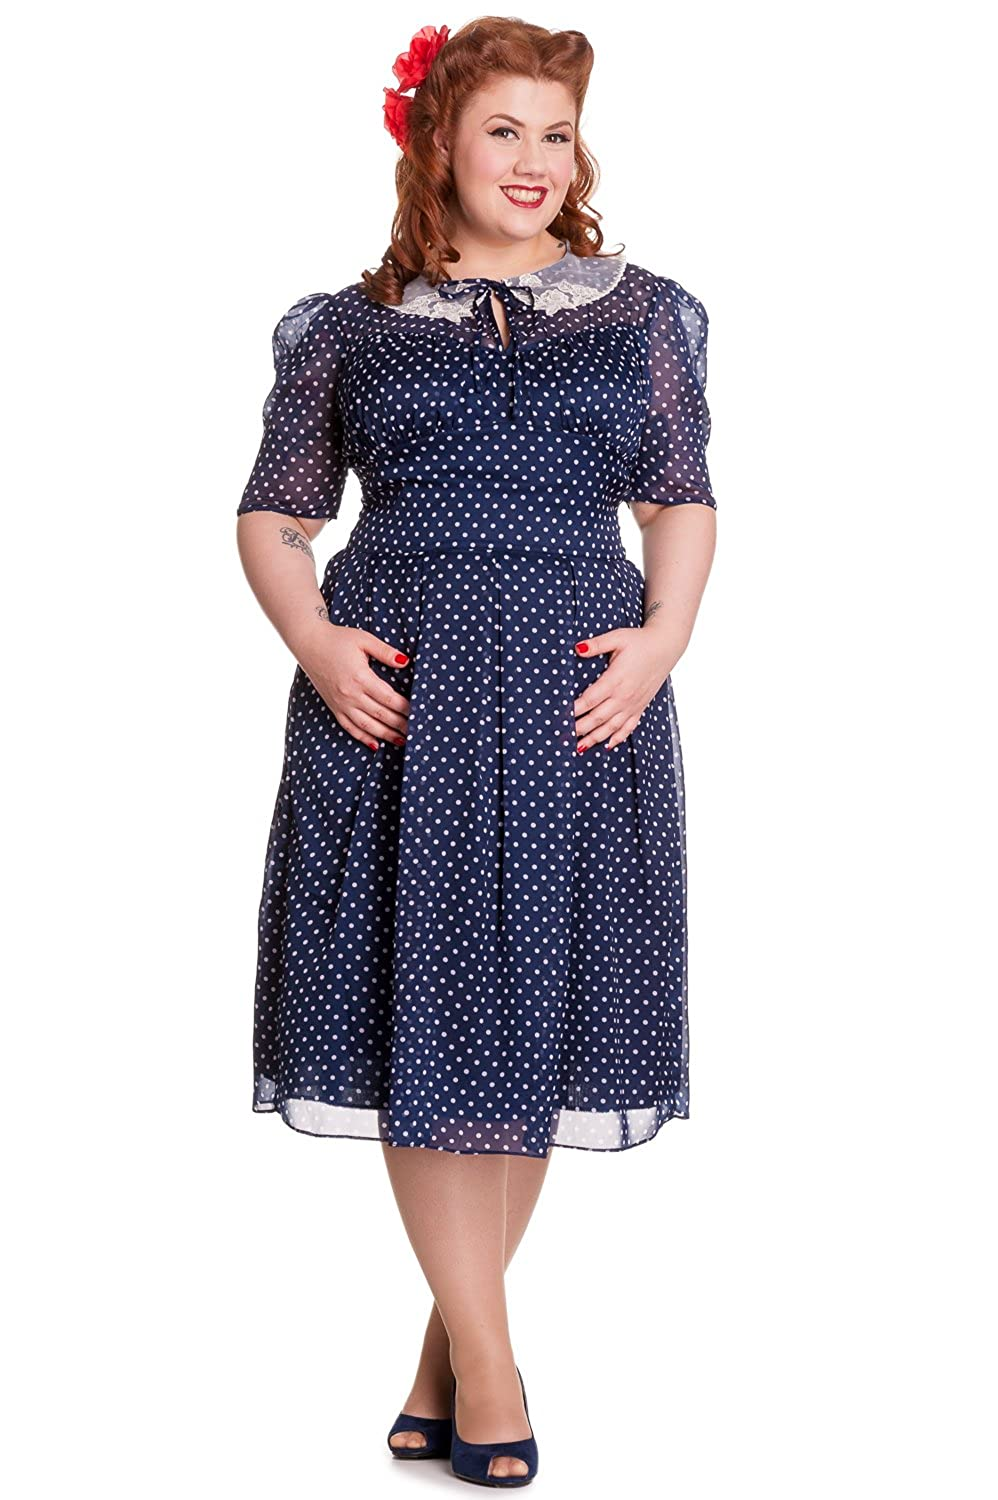 Vintage Polka Dot Dresses – Ditsy 50s Prints Hell Bunny Plus 40s 50s Vintage Cynthia Polka Dot Chiffon Dress $75.00 AT vintagedancer.com